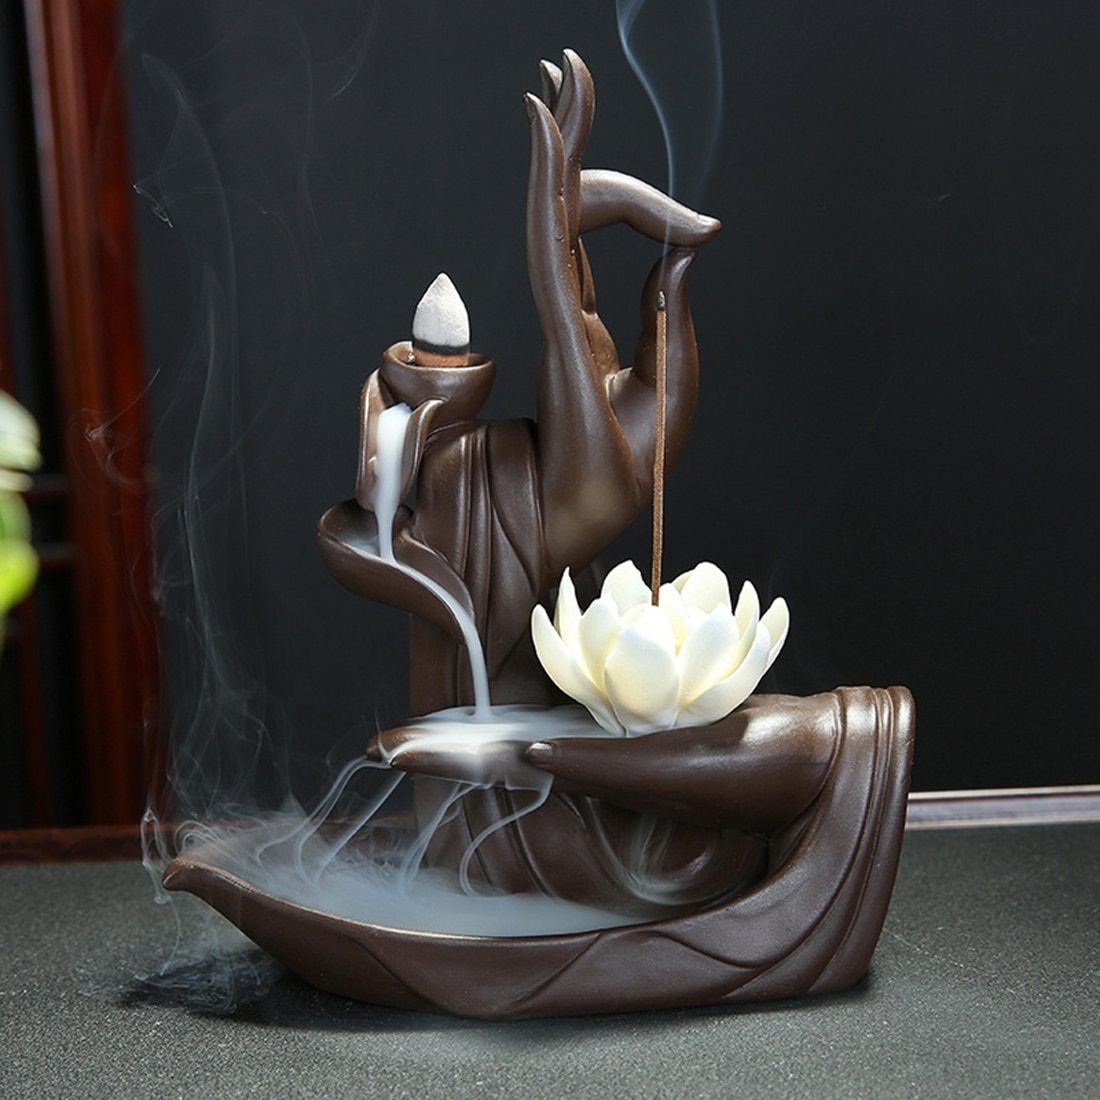 Hand of Buddha with Lotus Ceramic Backflow Incense Burner